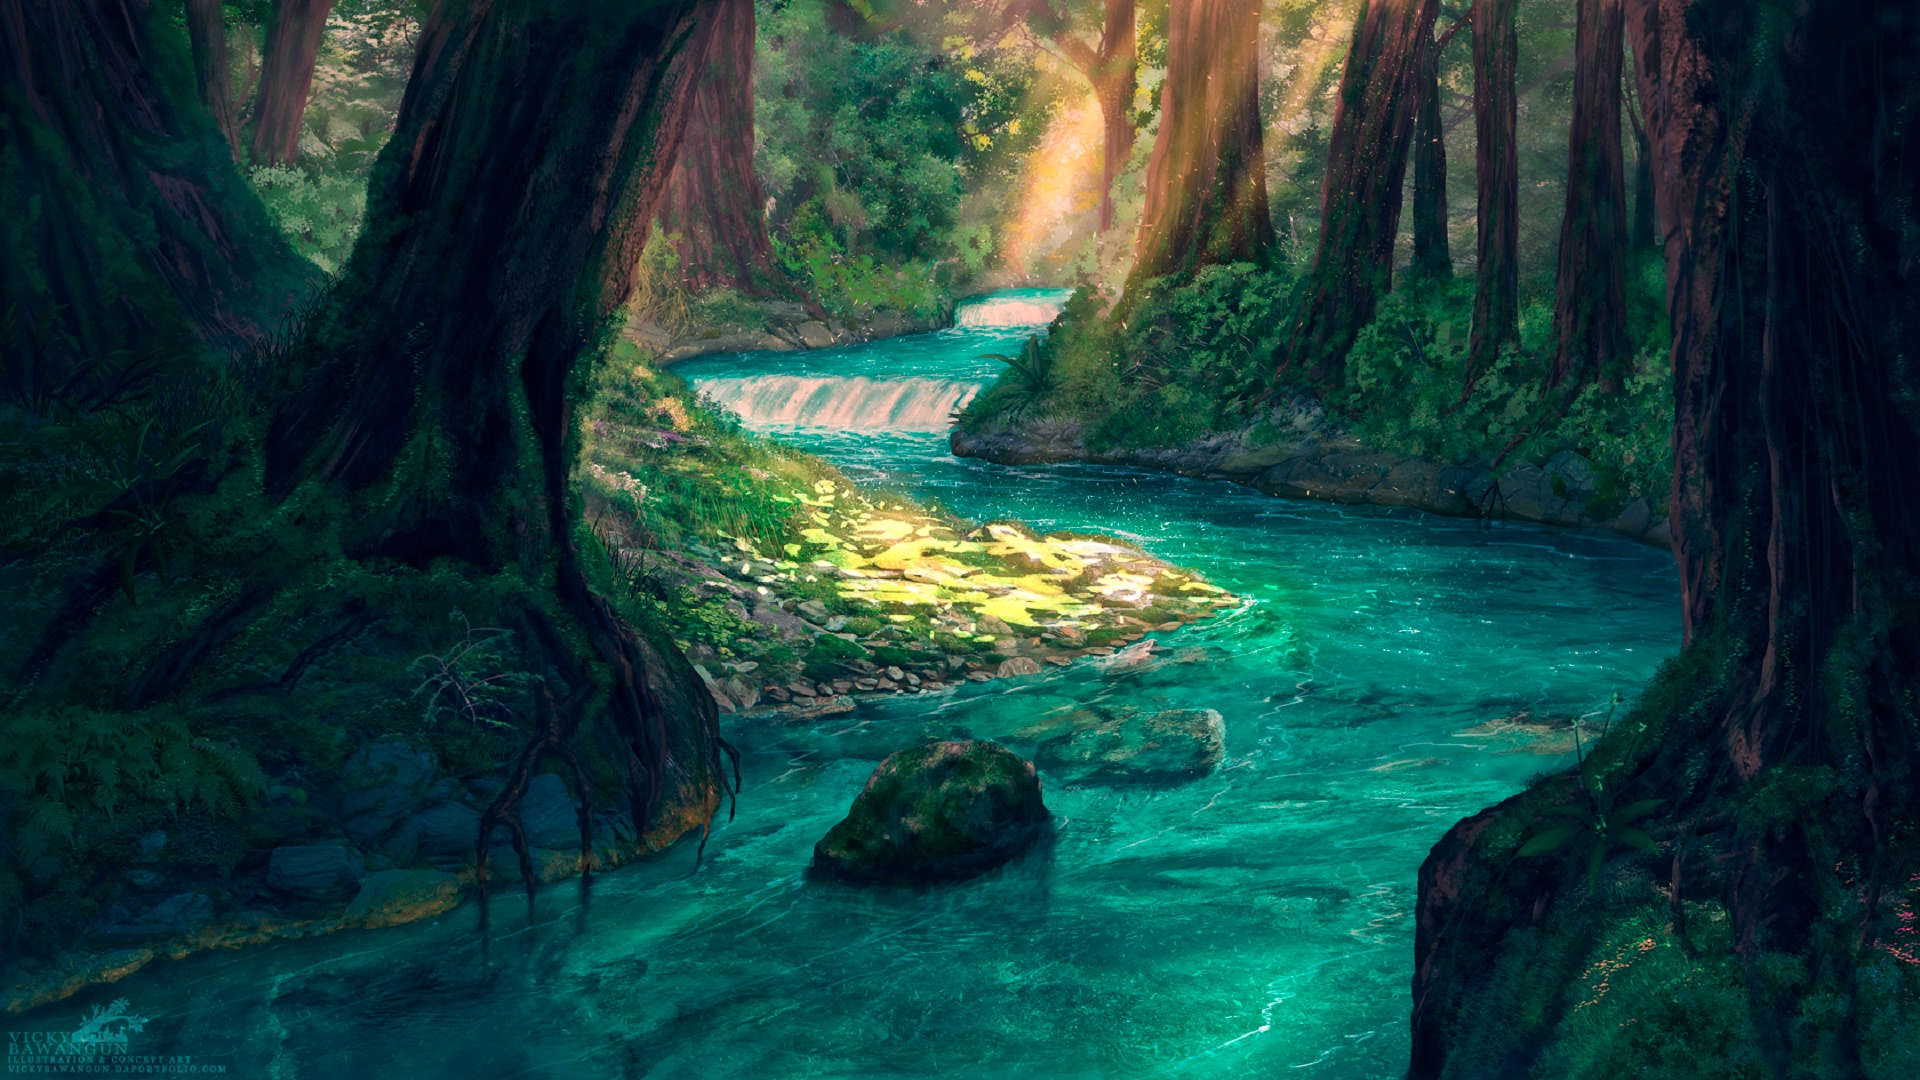 Wallpaper Engine - Forest River